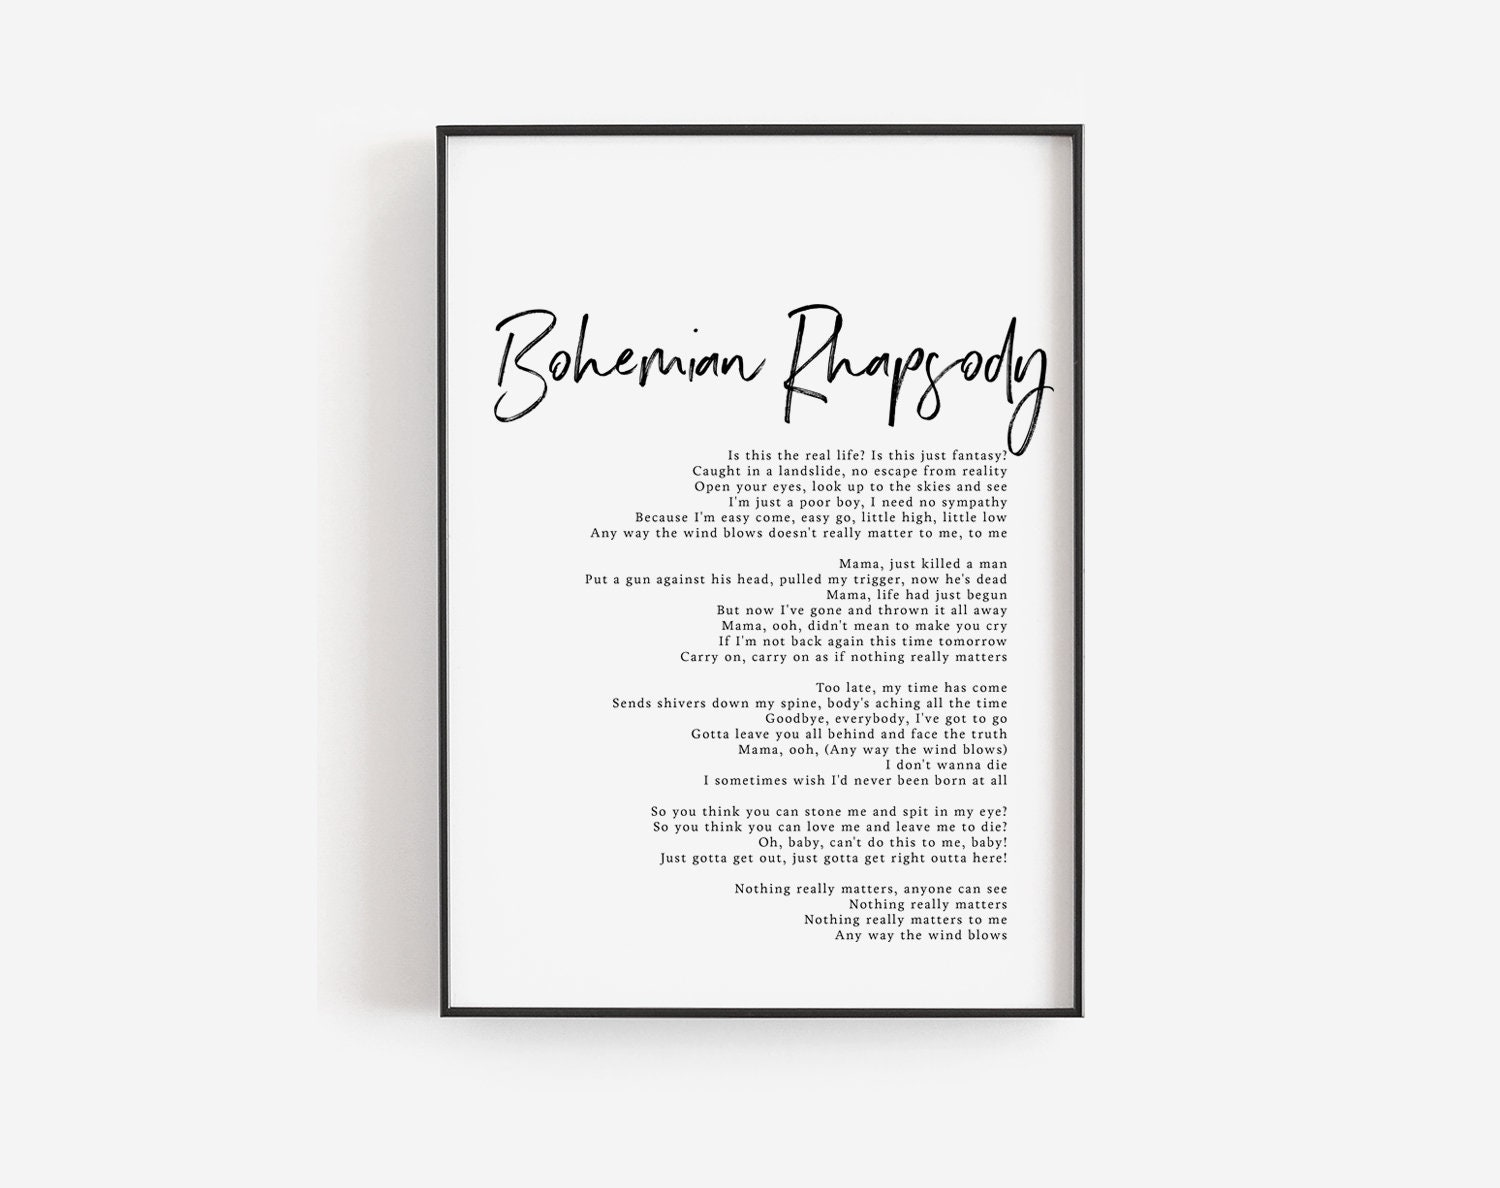 Bohemian Rhapsody print, Bohemian Rhapsody song lyrics art, Editable quote  template, Queen band, Song posters, Custom print, Printable song